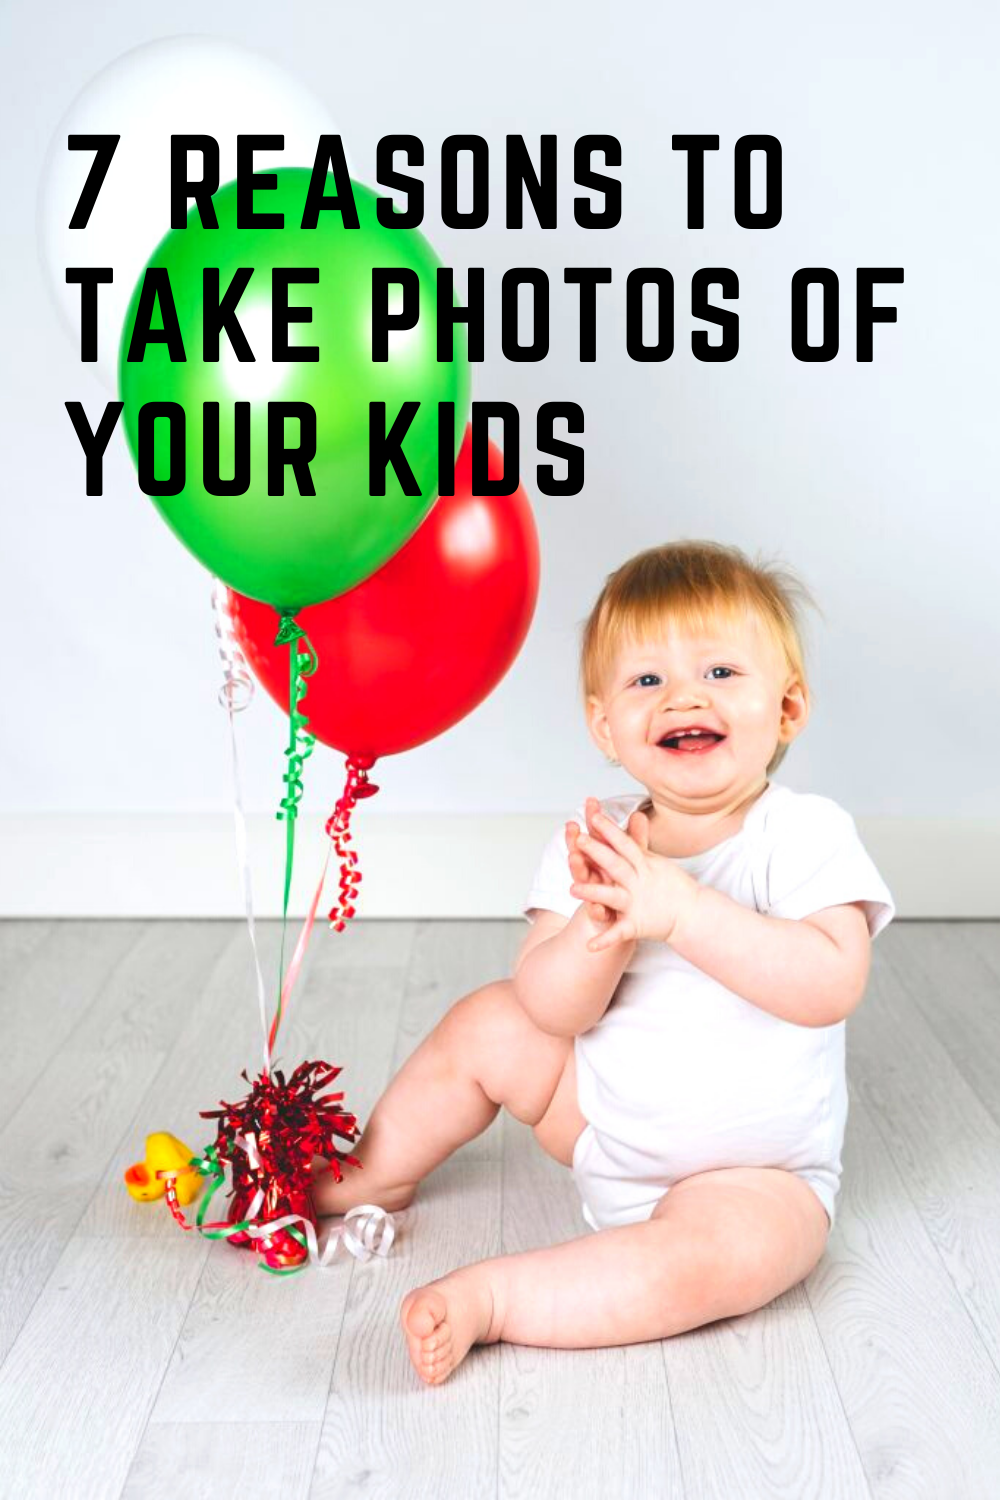 These seven reasons to take photos of your kids will have you reaching for the camera to capture happy memories and help you think about photos in a different way.